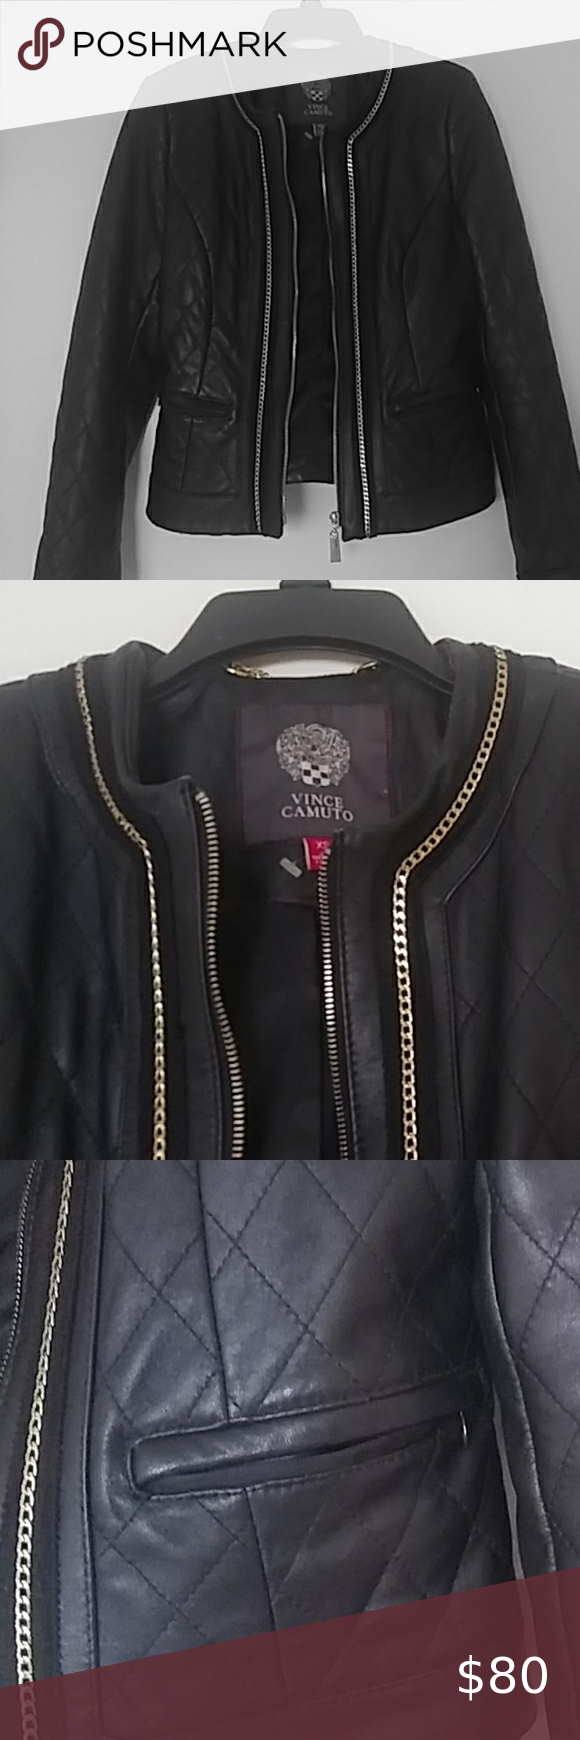 Real Leather Jacket Bomber Style Leather Jacket Has Gold Chain Lining The Zipper Collar Quilted Pa Real Leather Jacket Leather Jacket Leather Bomber Jacket [ 1740 x 580 Pixel ]